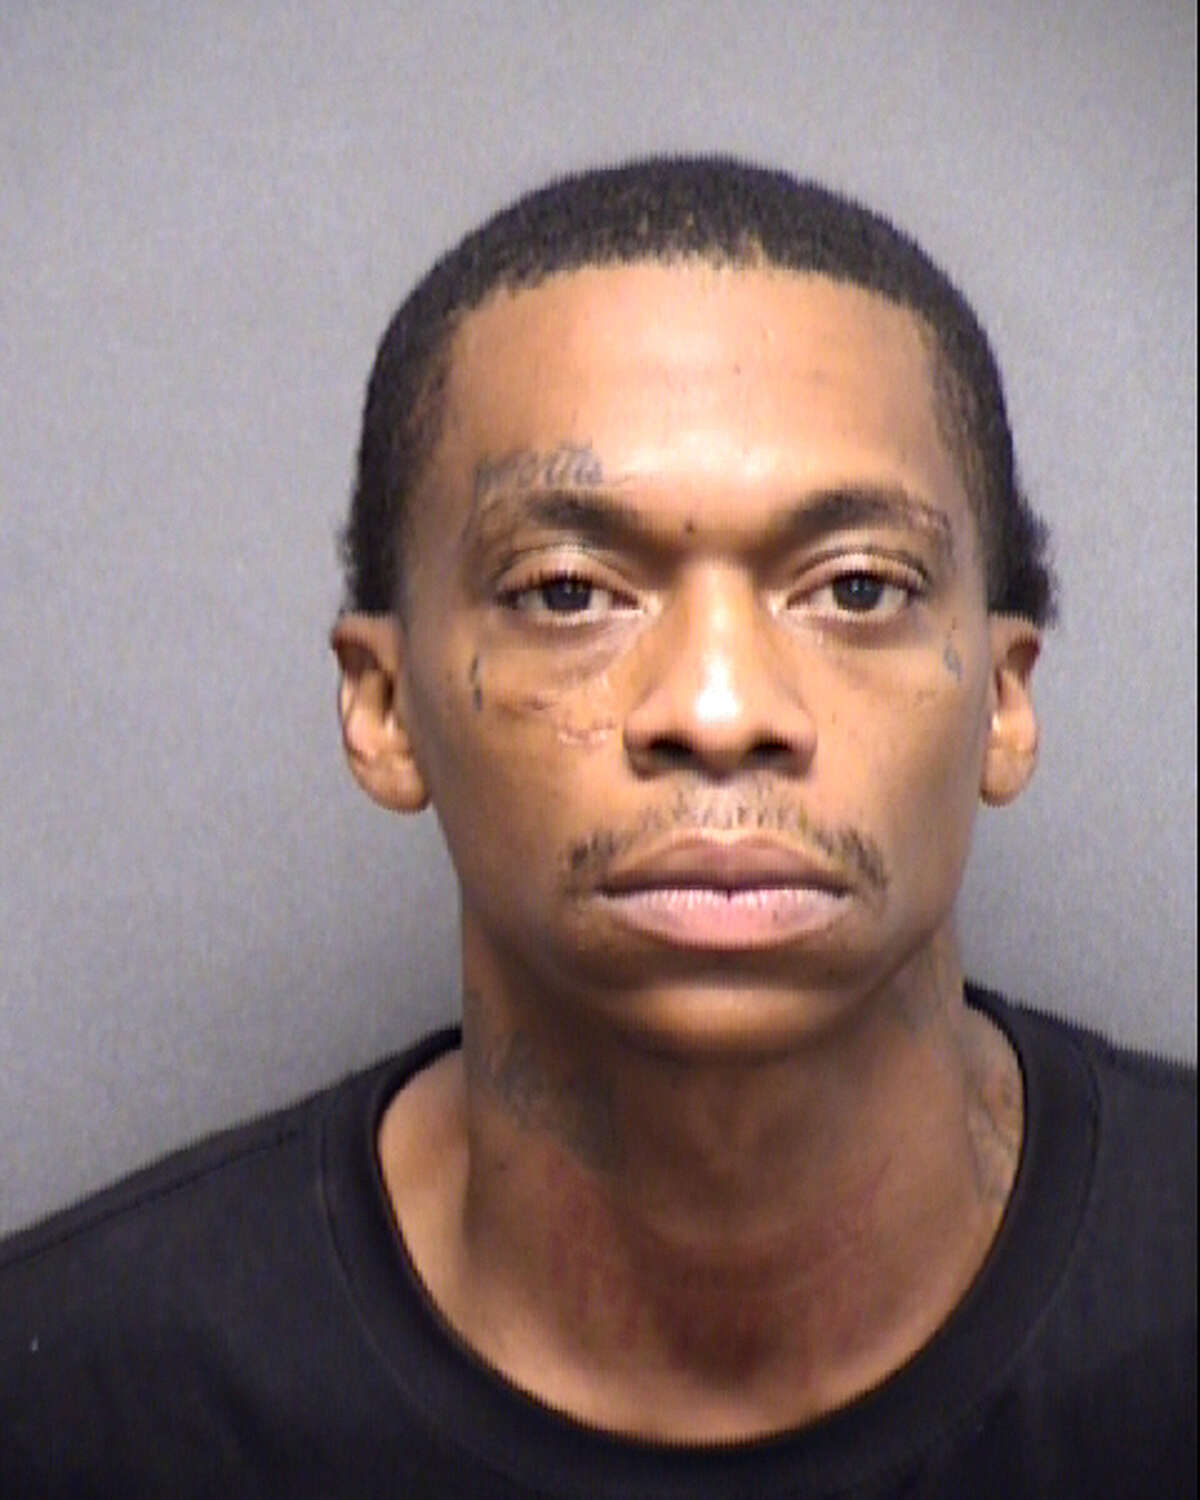 Raushaun Rashid Al-Sharrif Harris, 35, was charged in connection with the fatal shooting of Cameron Terrell Woods outside an East Side gas station on May 19, 2020.